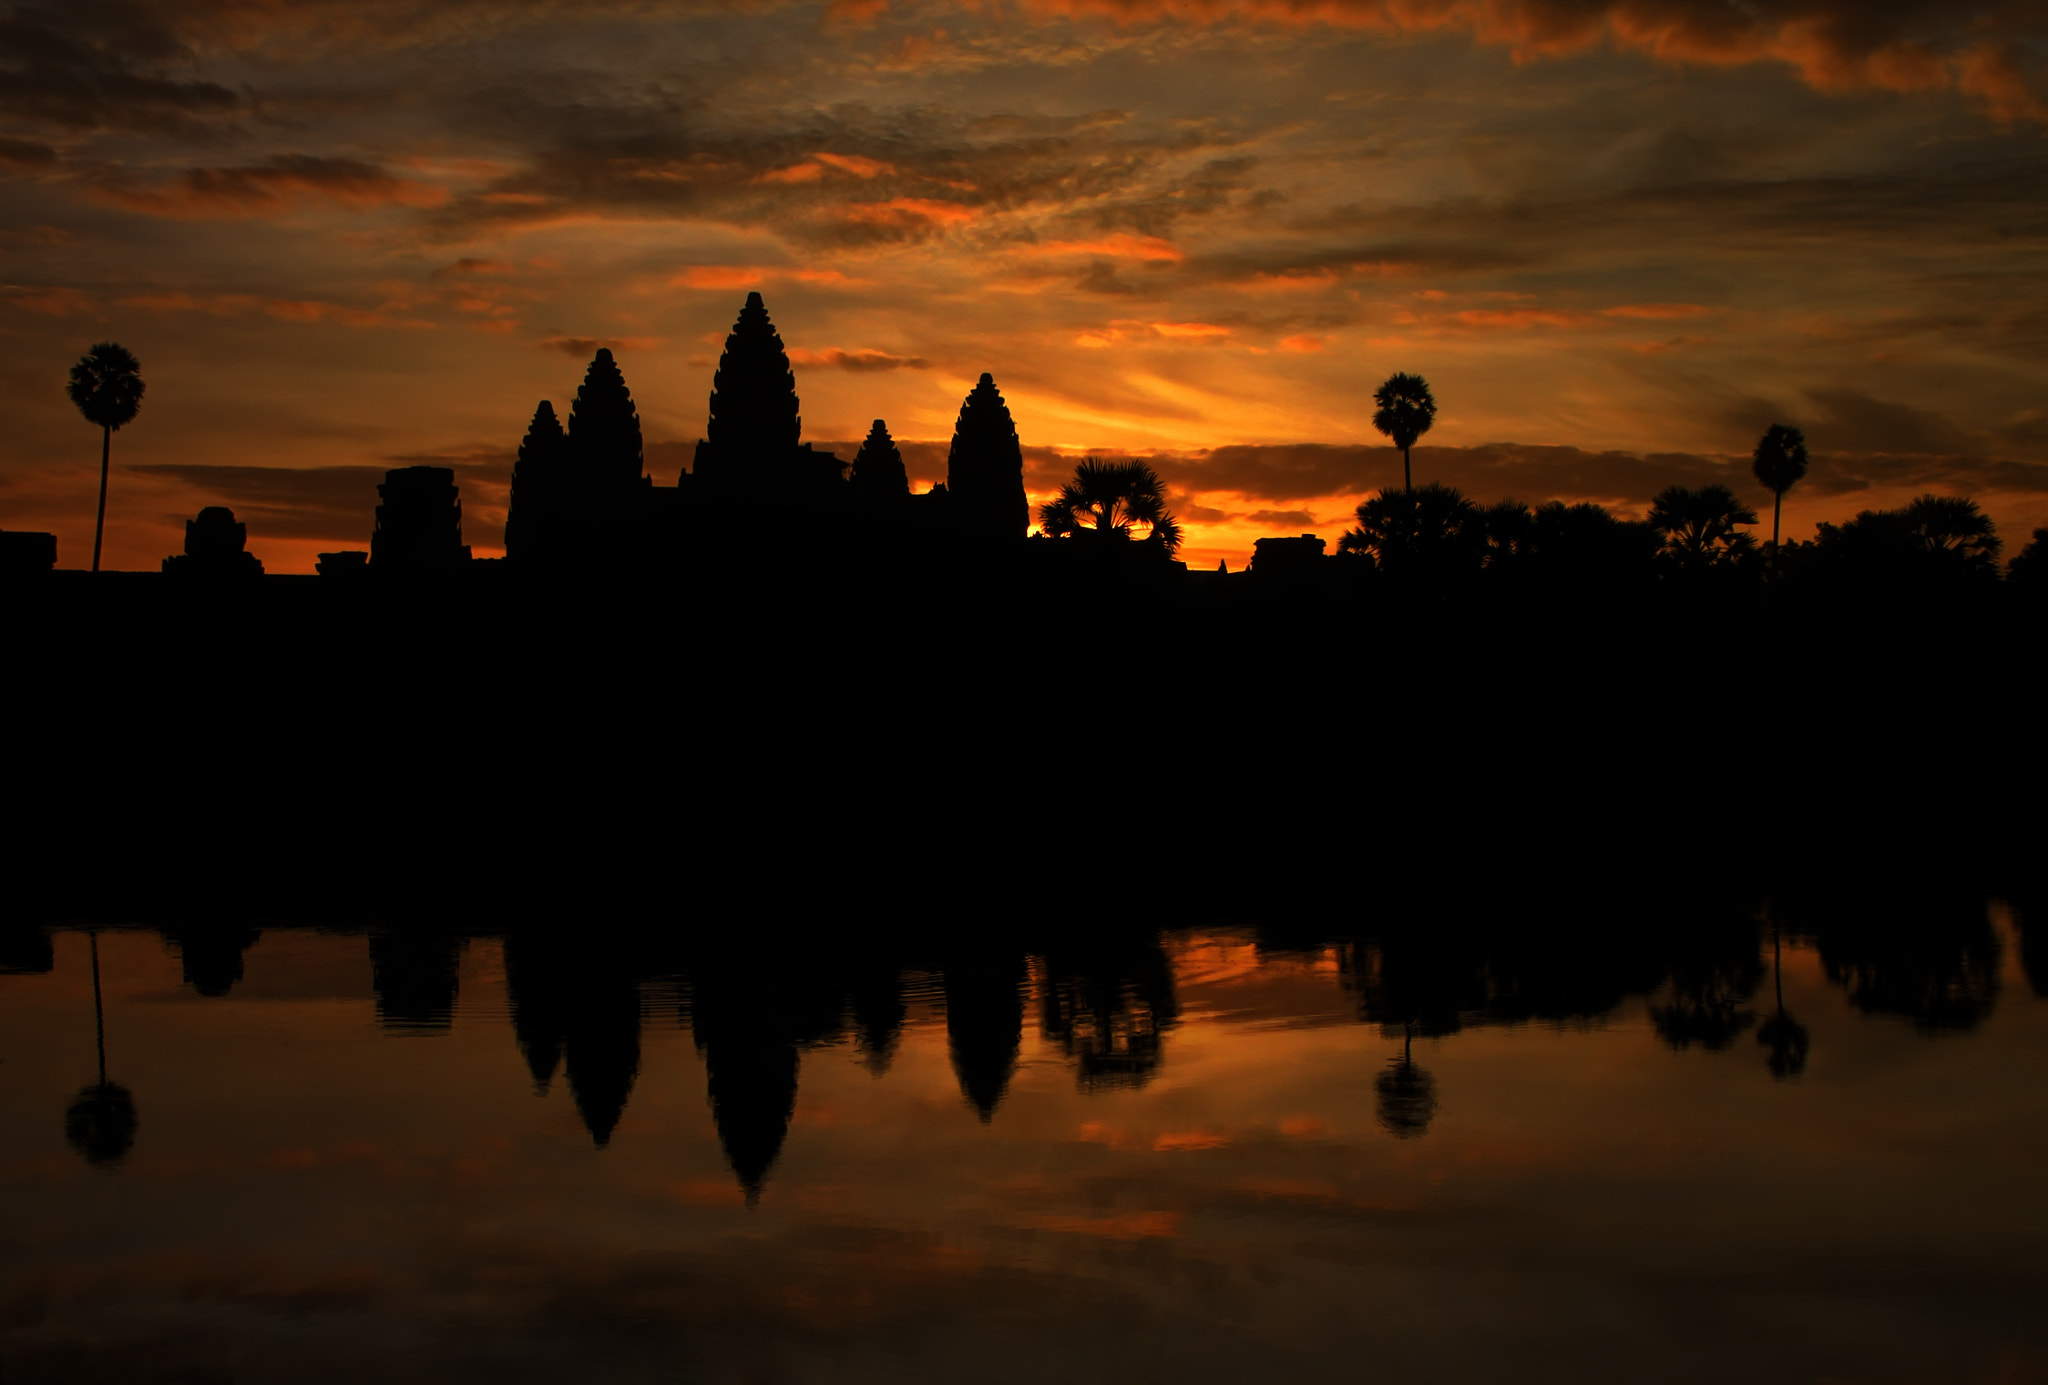 Photograph Angkor Wat by Florian Hehenberger on 500px